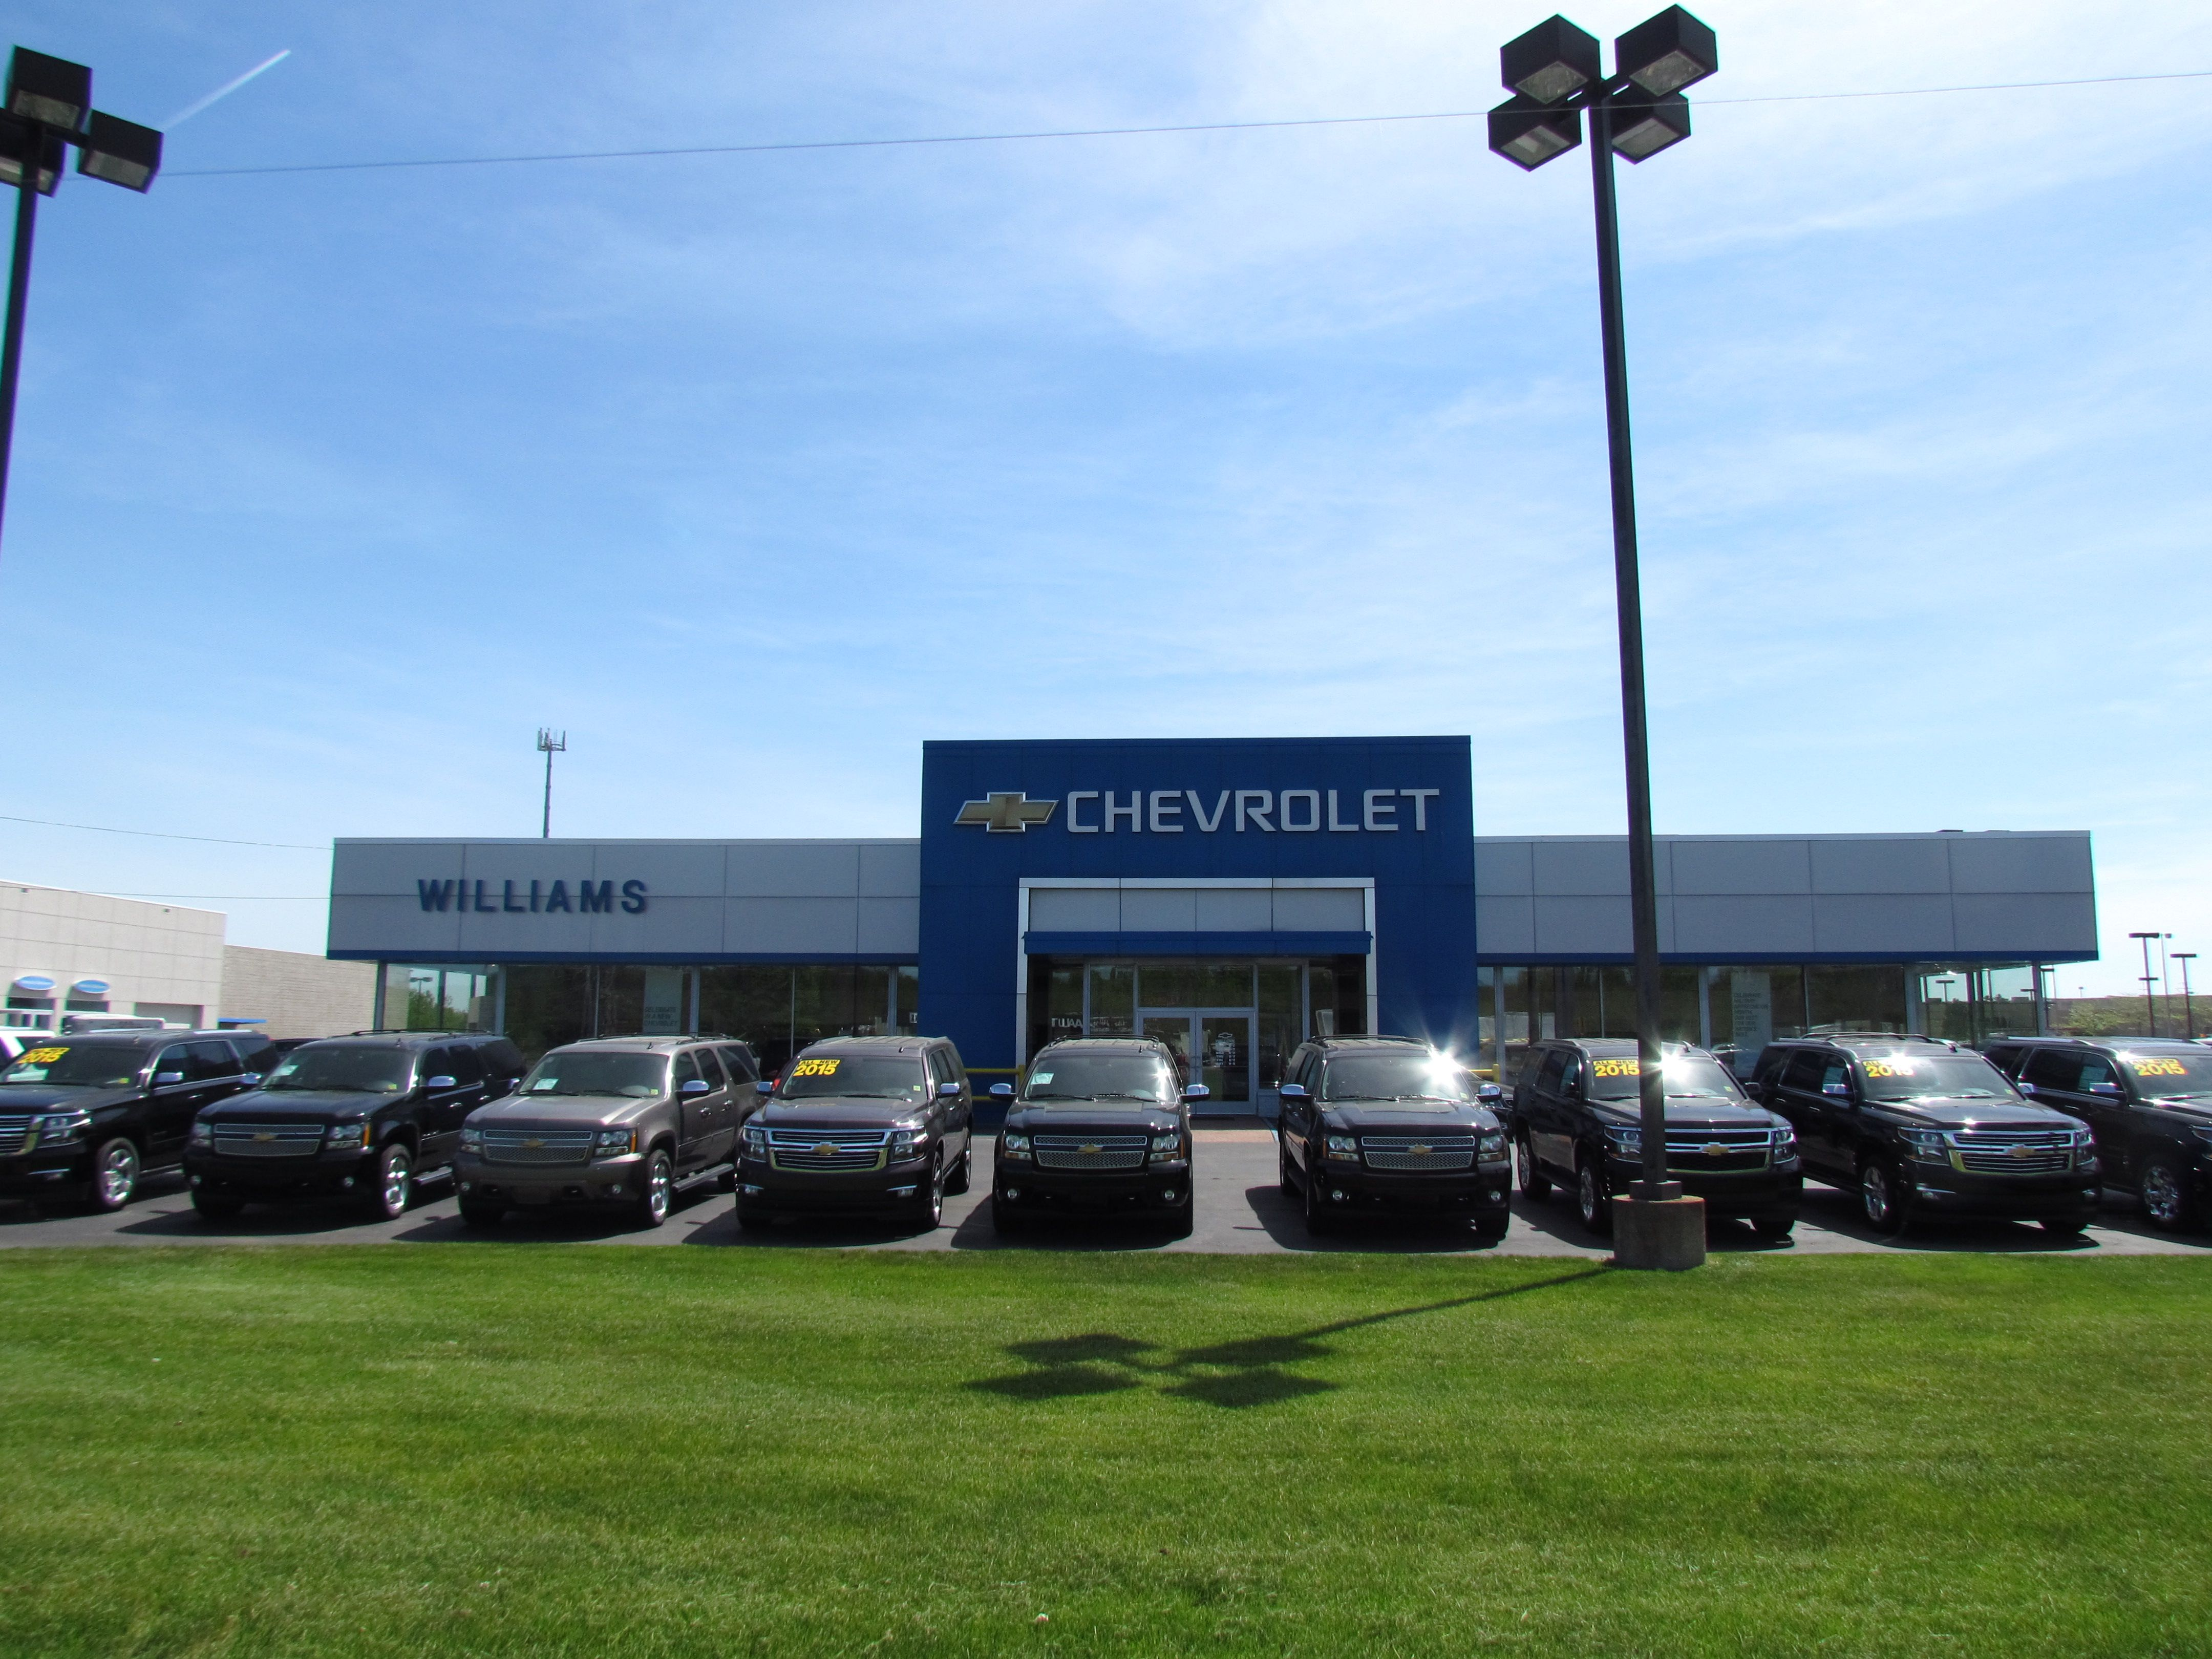 Amazing Williams Chevrolet In Traverse City. 2600 US 31 North. Stop In And Let Us